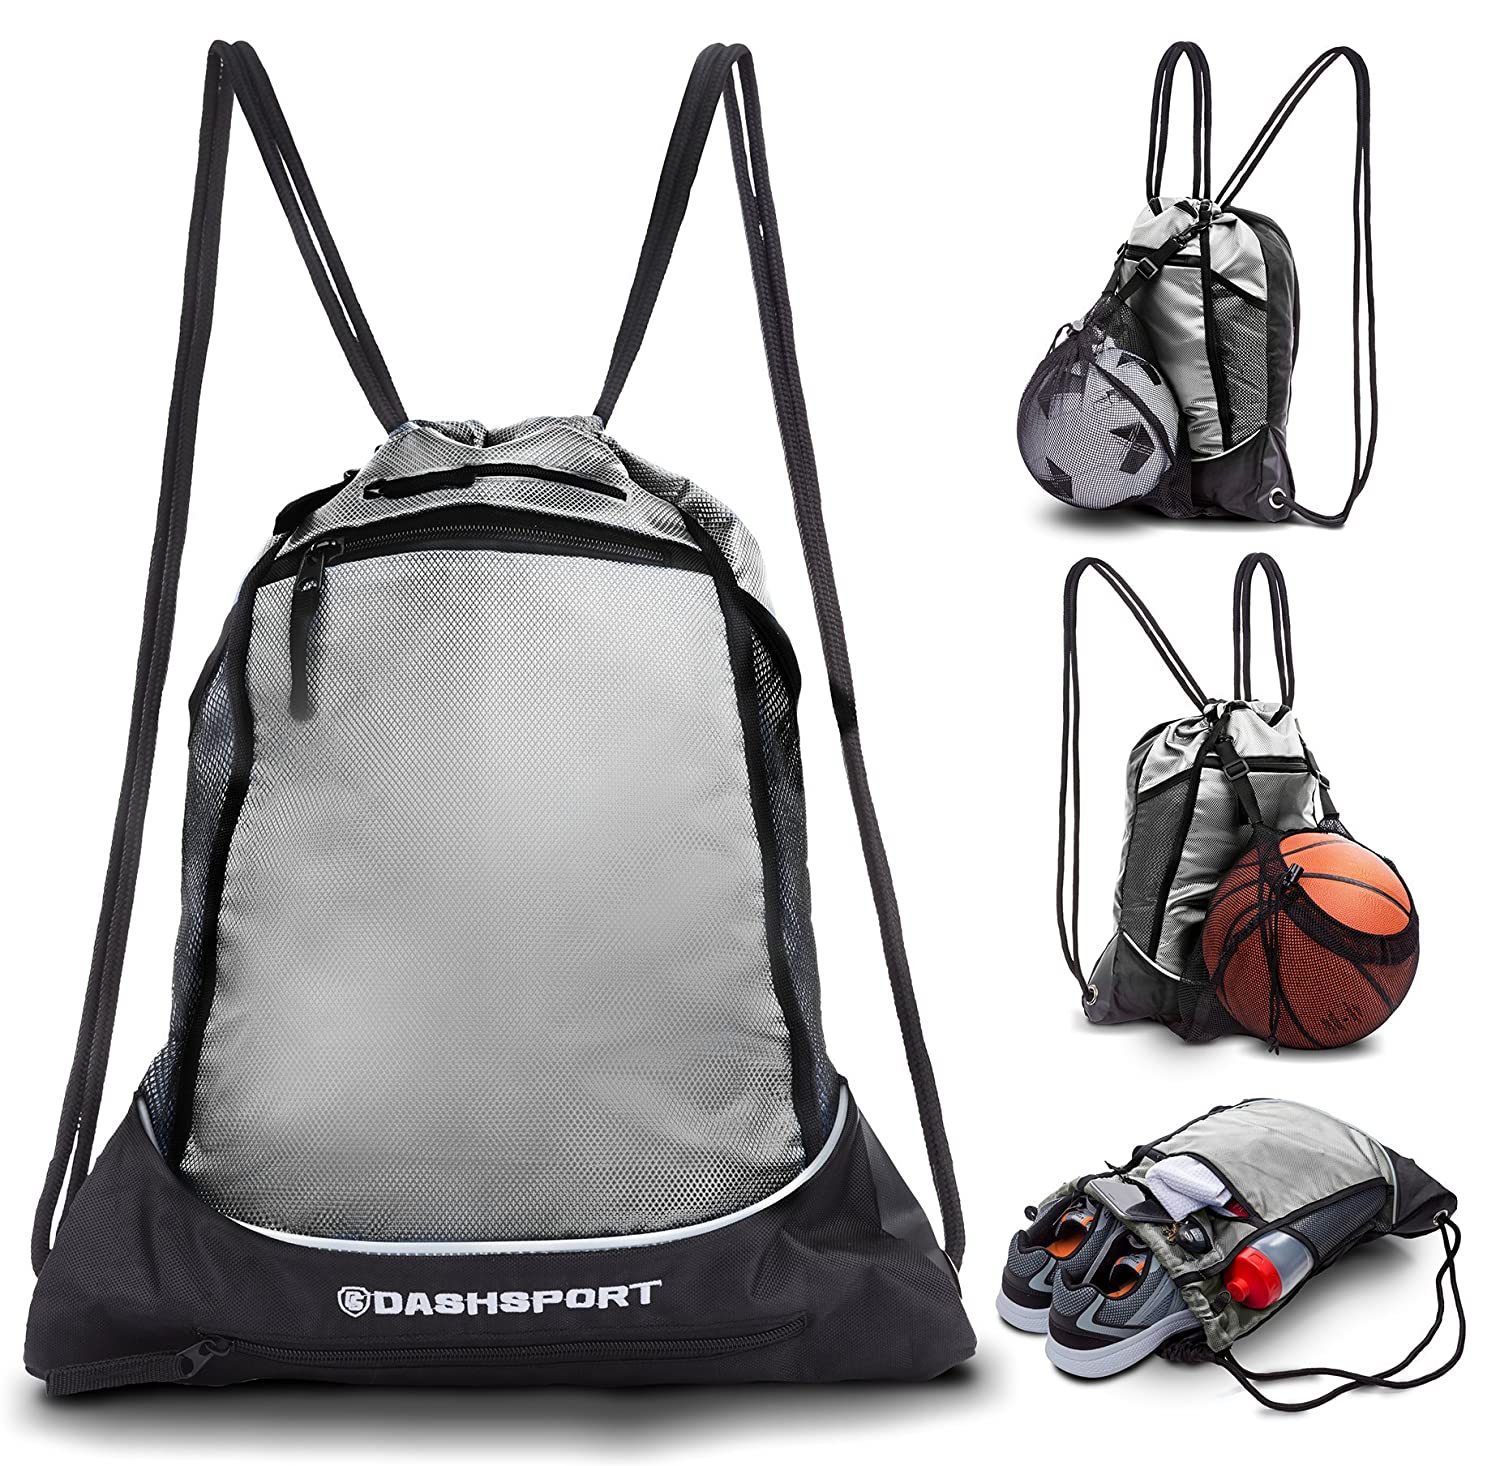 Drawstring Bag with Mesh Net - Perfect Sackpack with Ball Net for all Sports - Gym Bag for Men and Women, Tote Bag, Sports Sack, Light Backpack, Soccer Bag, Basketball, Volleyball, Baseball for Youth DashSport